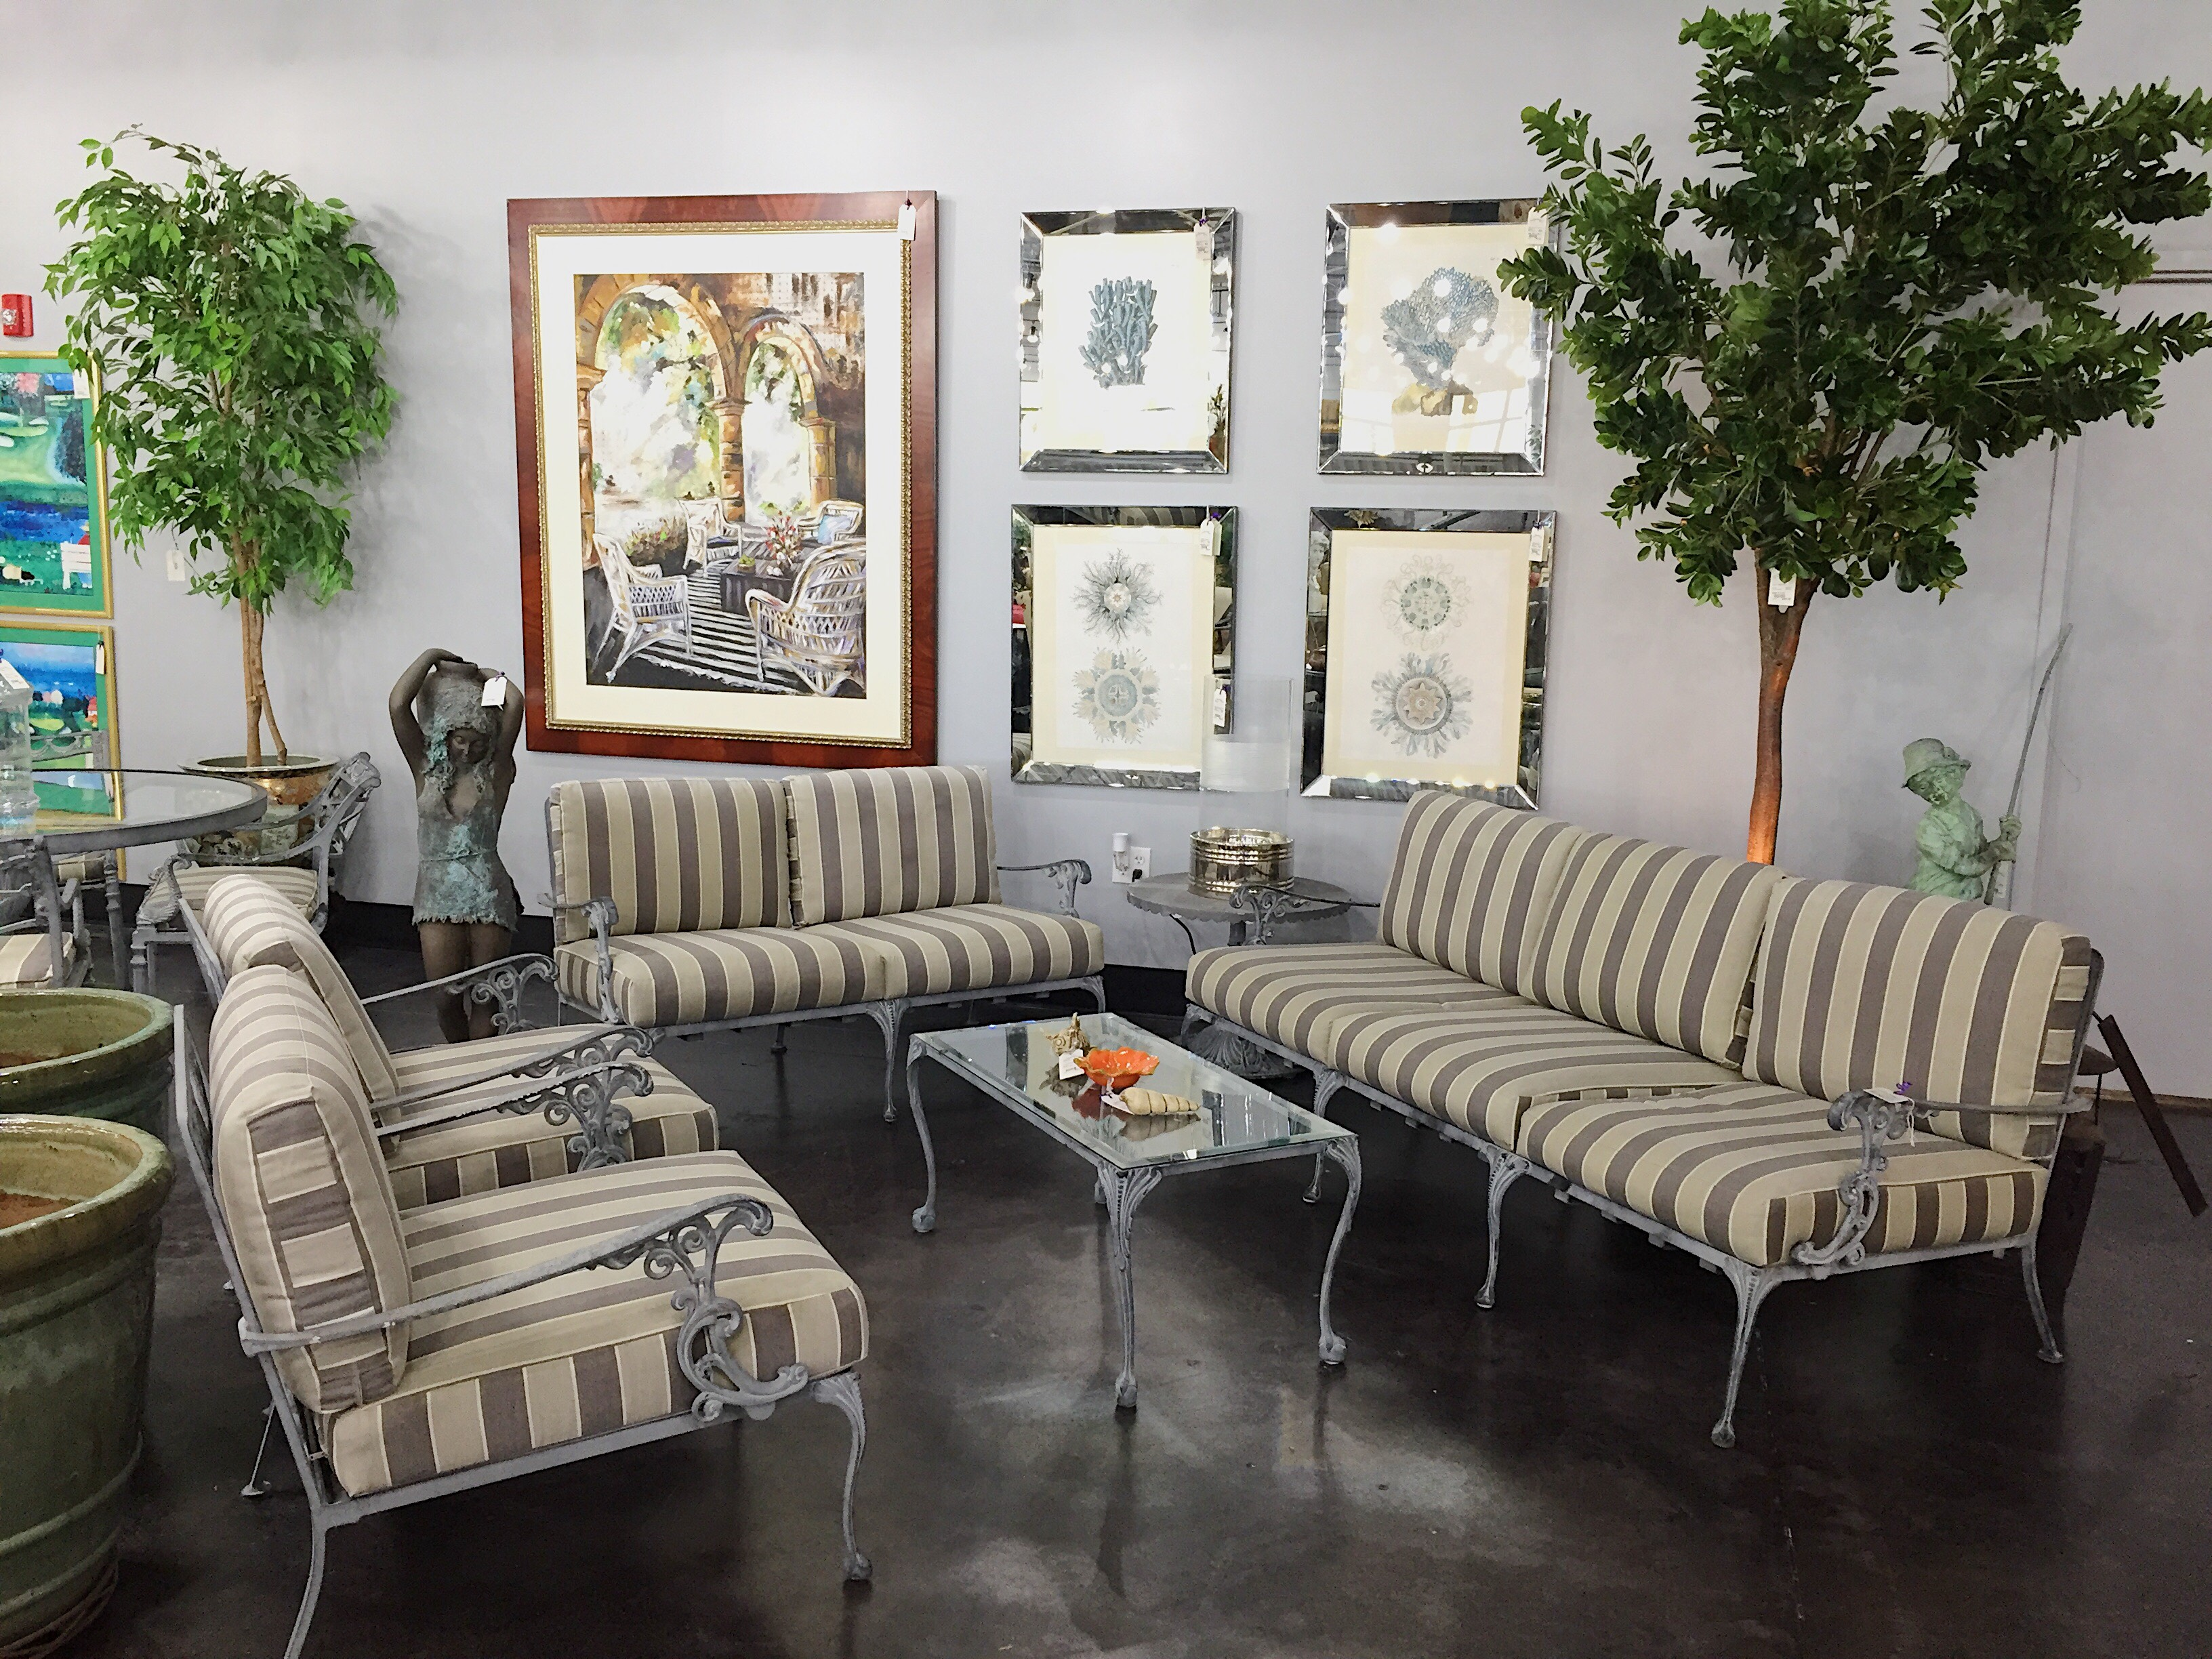 There Is One Very Practical Solution: Consignment Furniture Stores Like  PoshPlum. PoshPlum Specializes In Both Sides Of This Economic Equation:  They Display ...